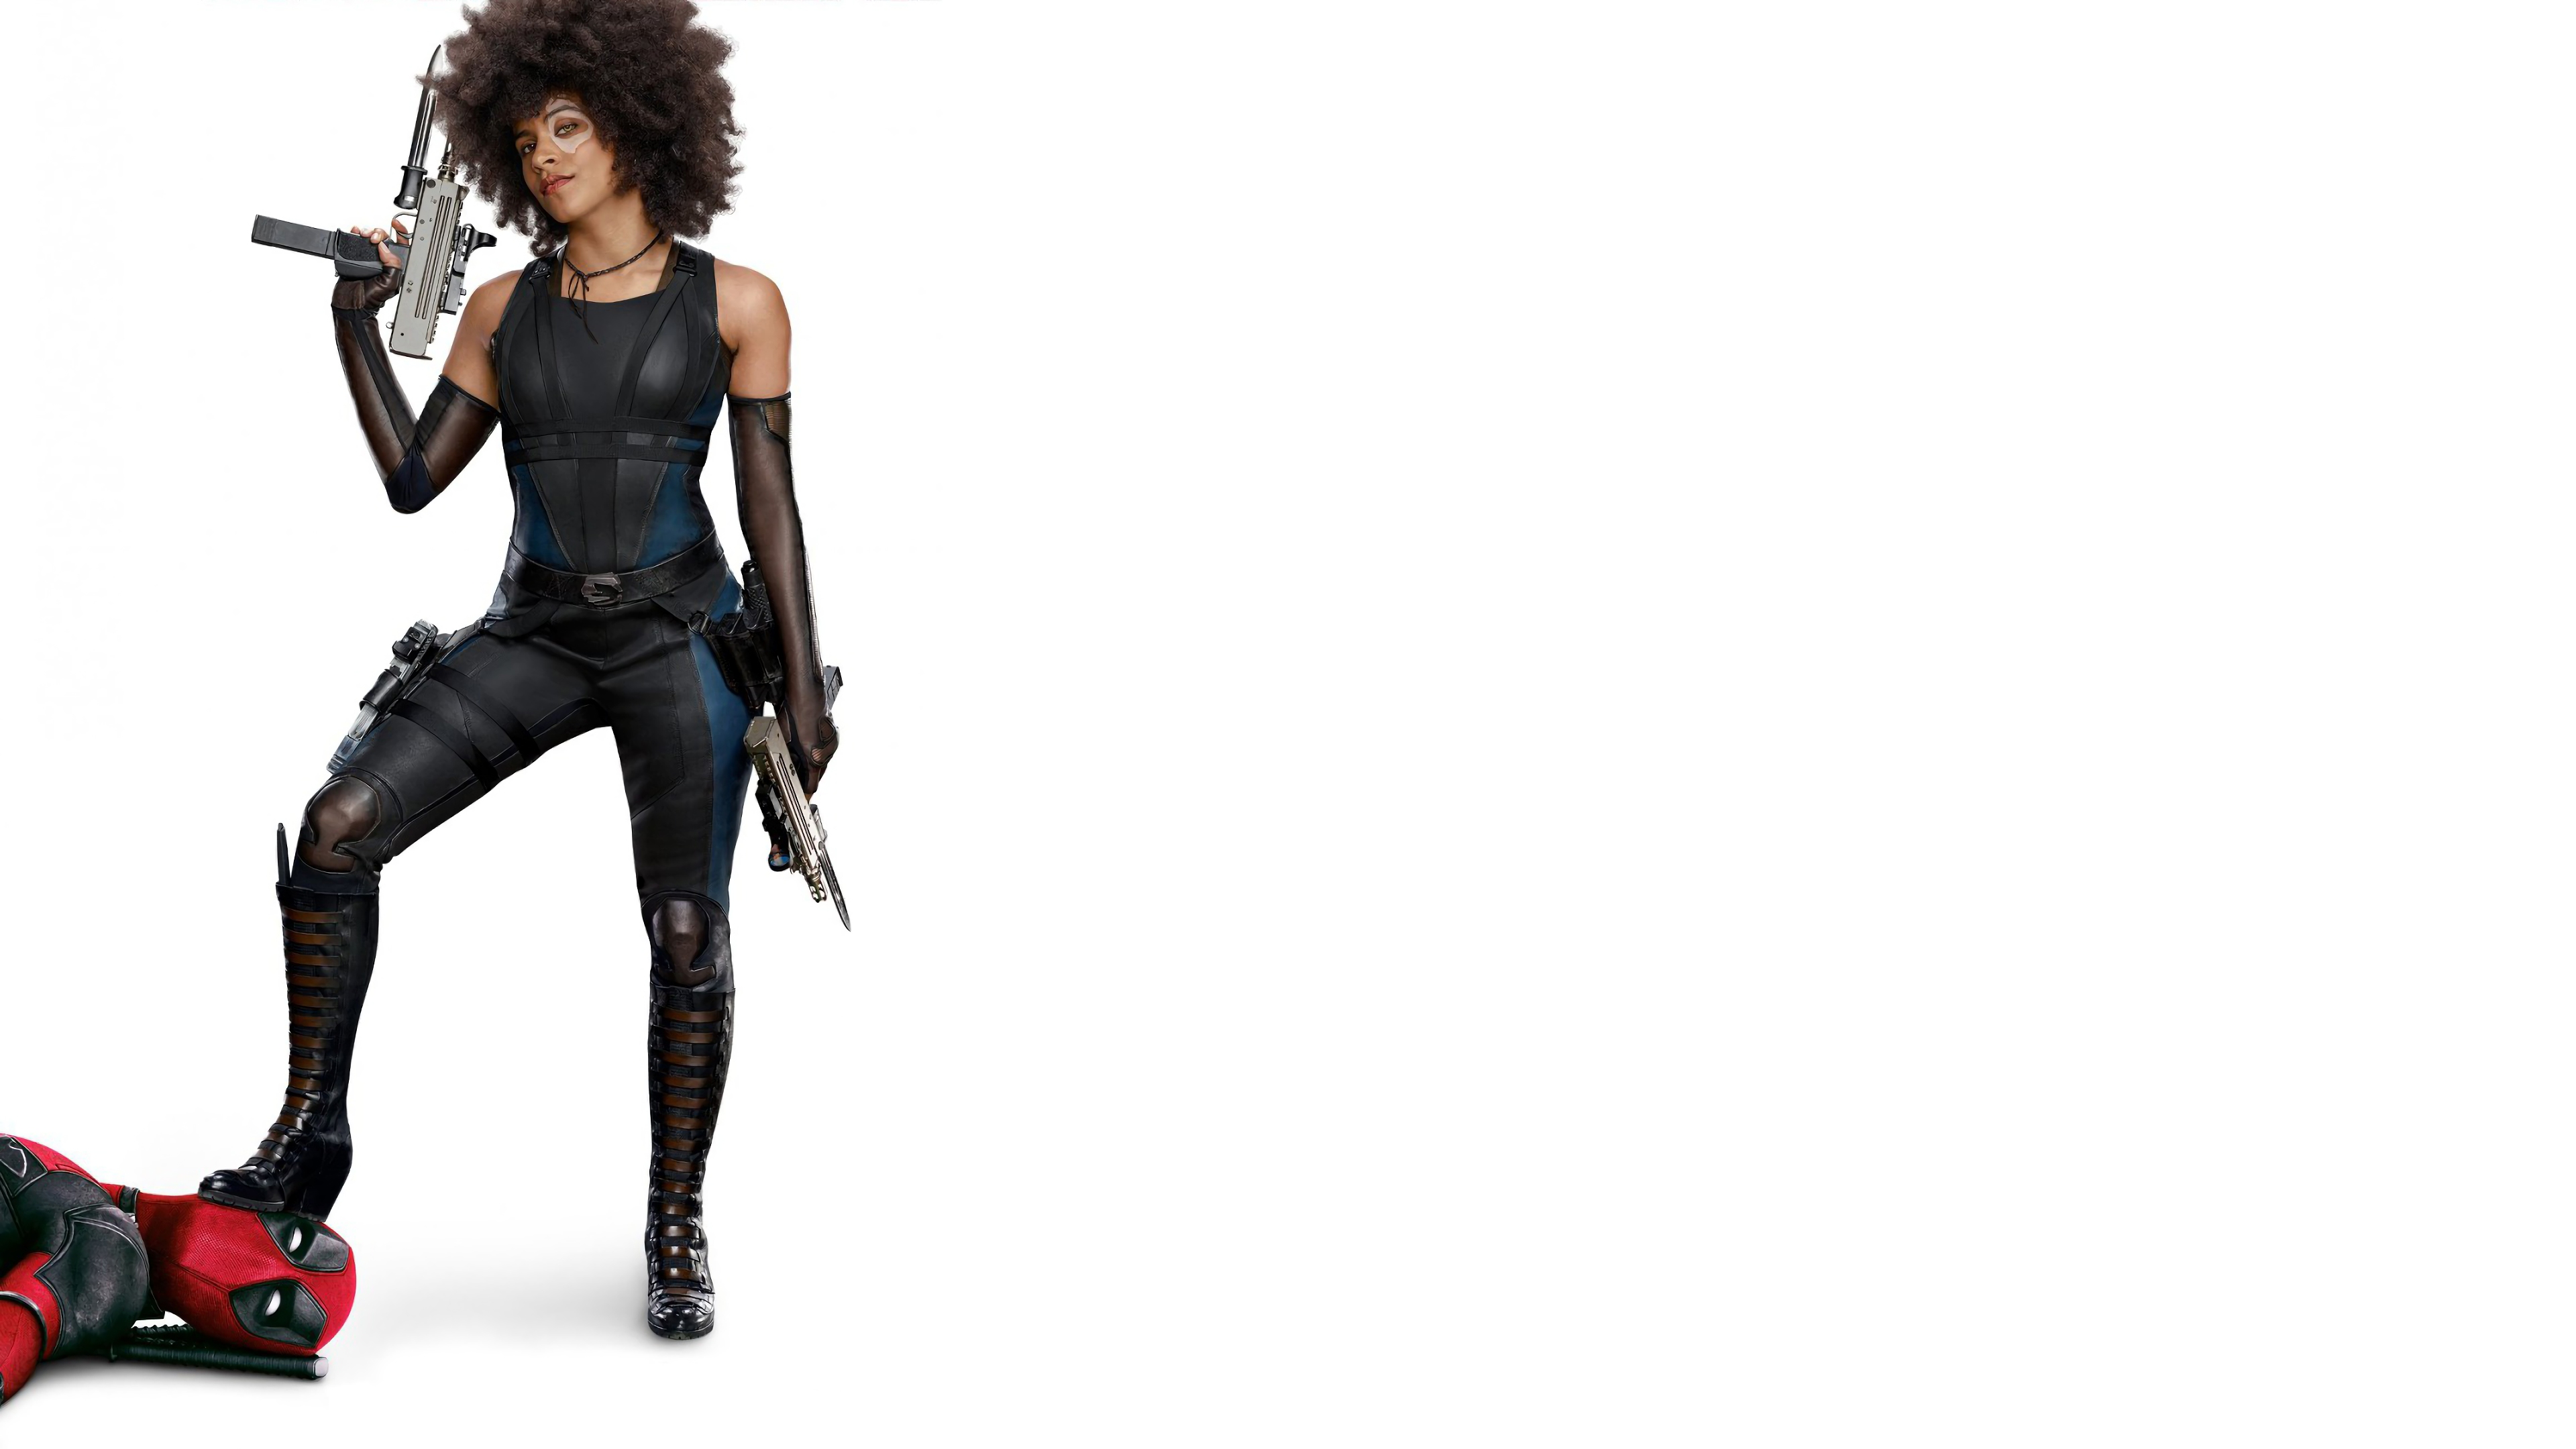 Domino And Deadpool In Deadpool 2 Hd Movies 4k HD Wallpapers Download Free Images Wallpaper [1000image.com]